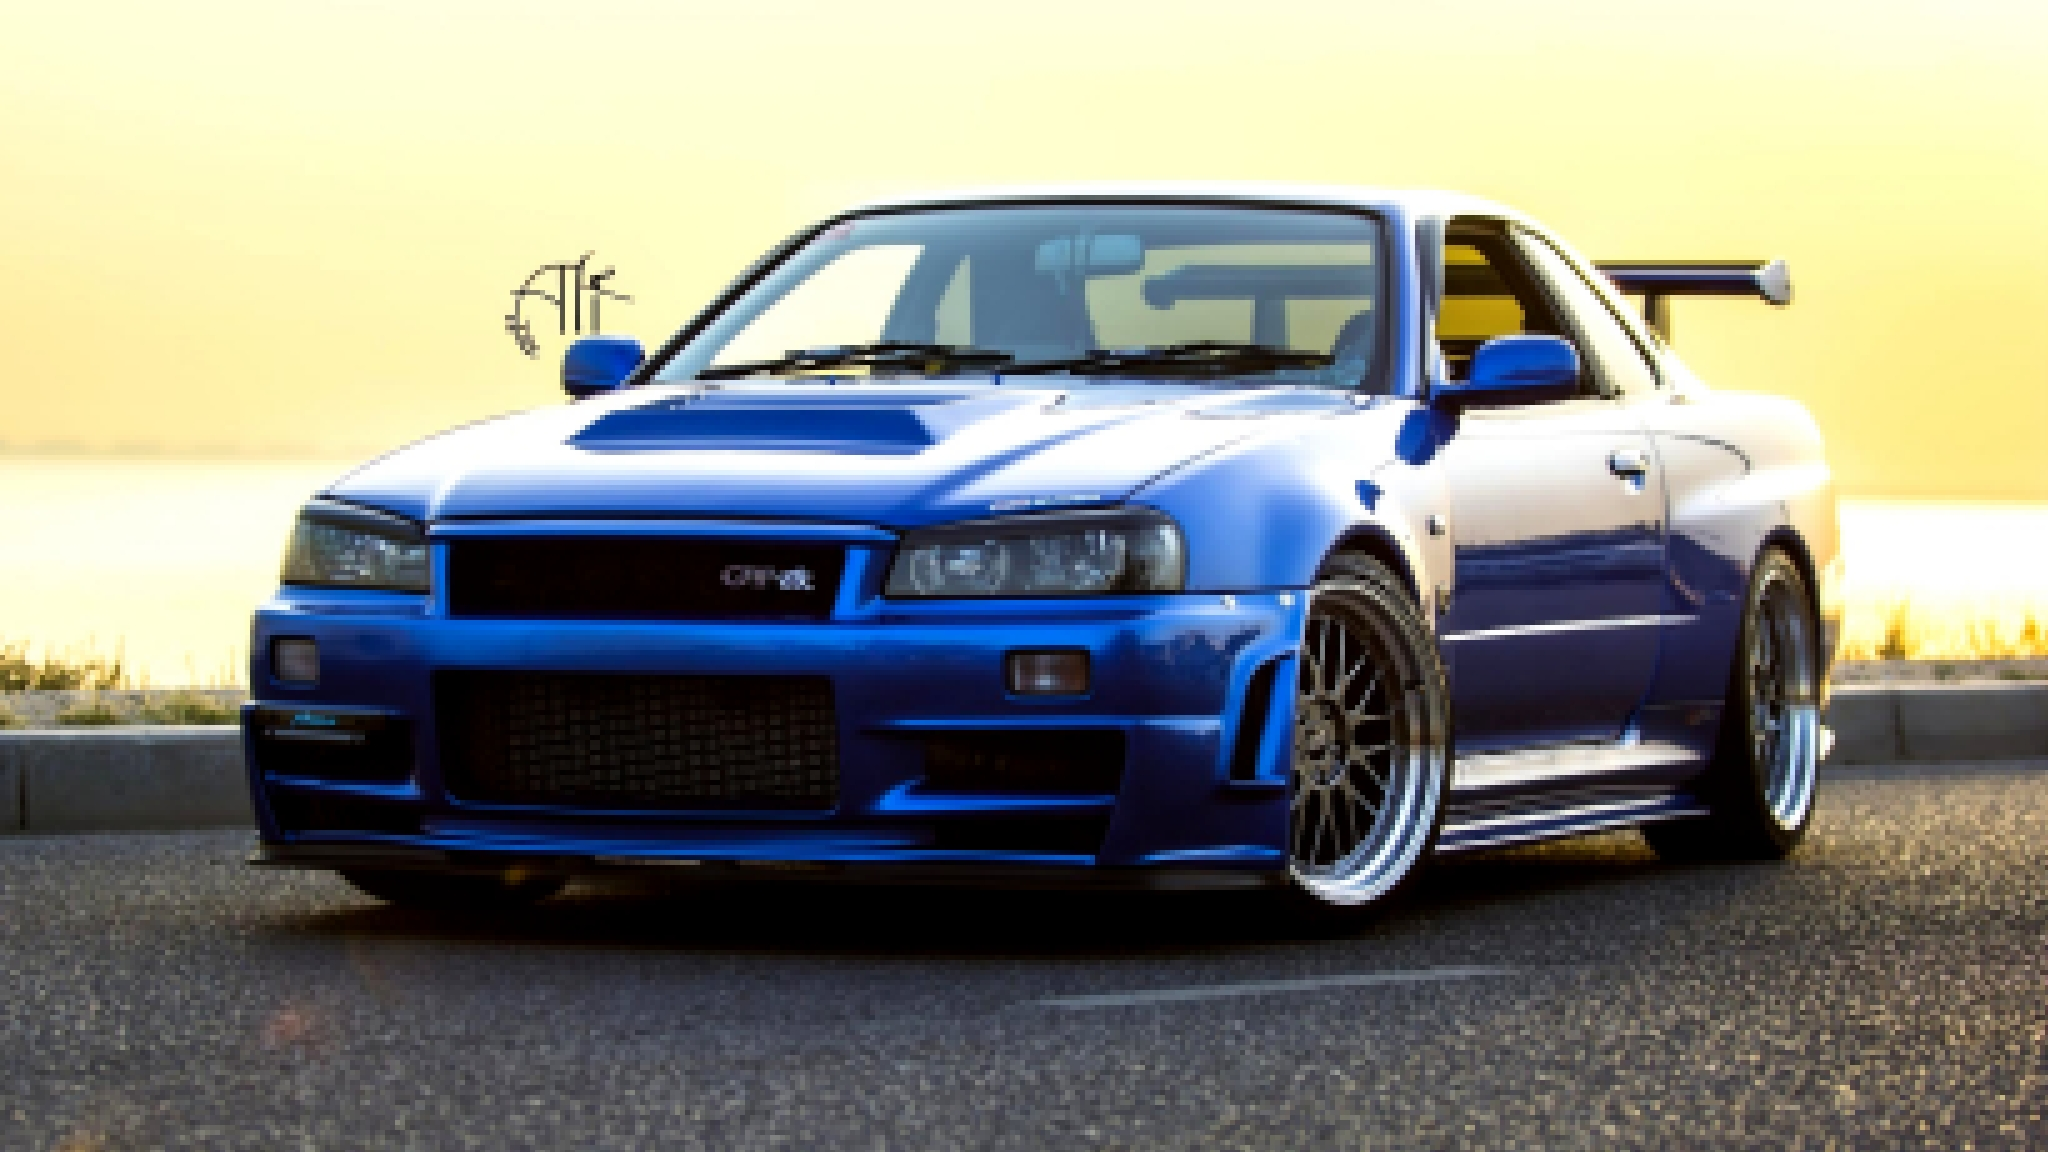 Nissan Car Tuning Nissan skyline gtr Wallpaper Dual Wide 2048x1152.